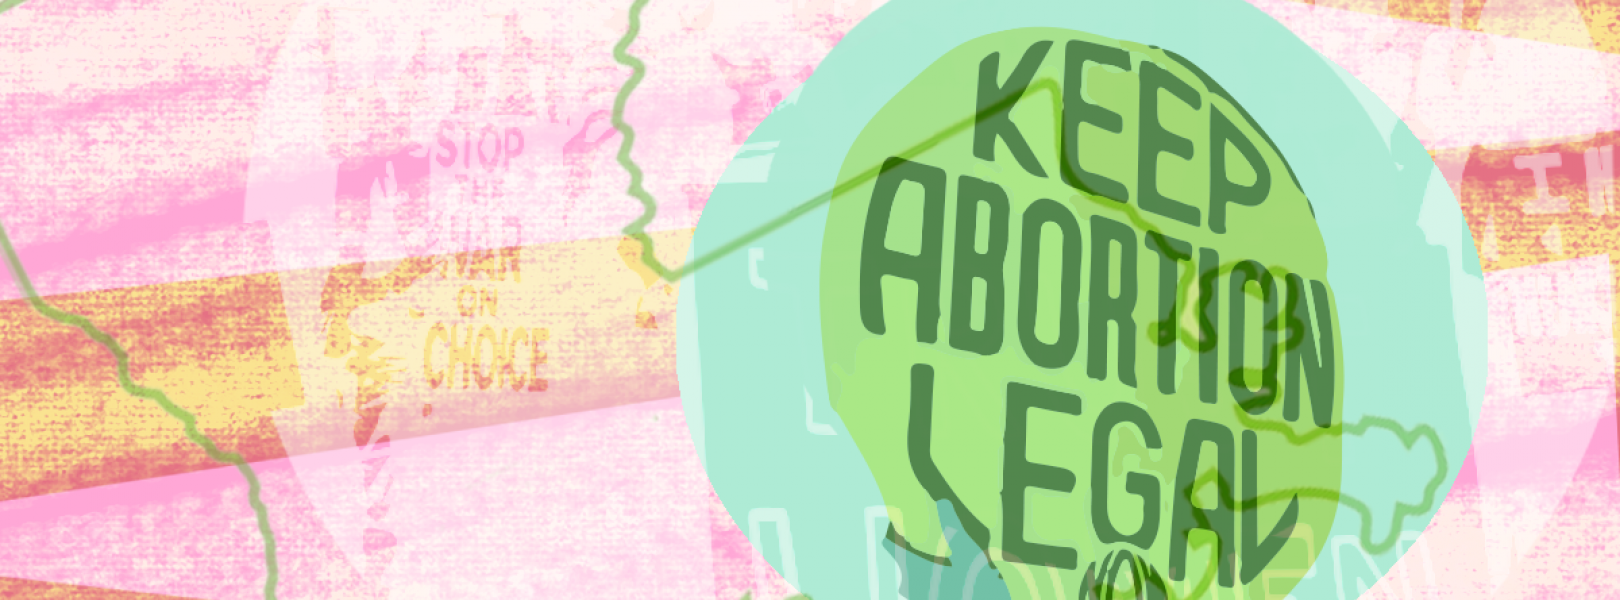 A protest sign saying keep abortion legal